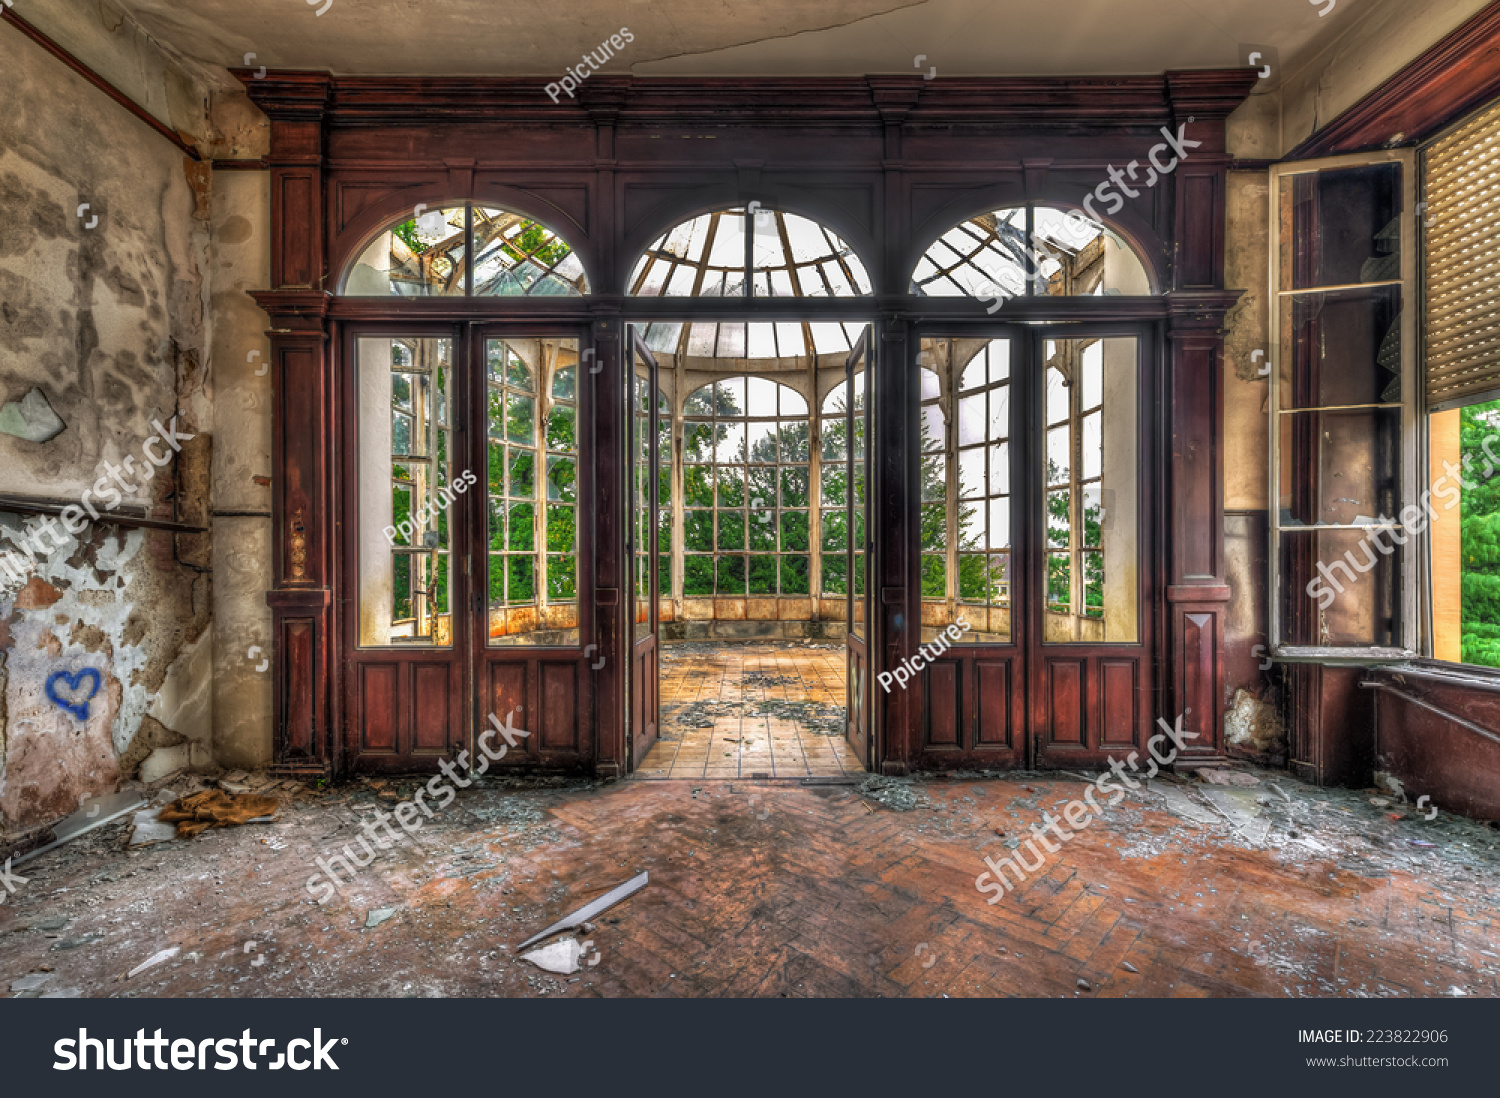 Abandoned Room With View Through Beautiful Broken